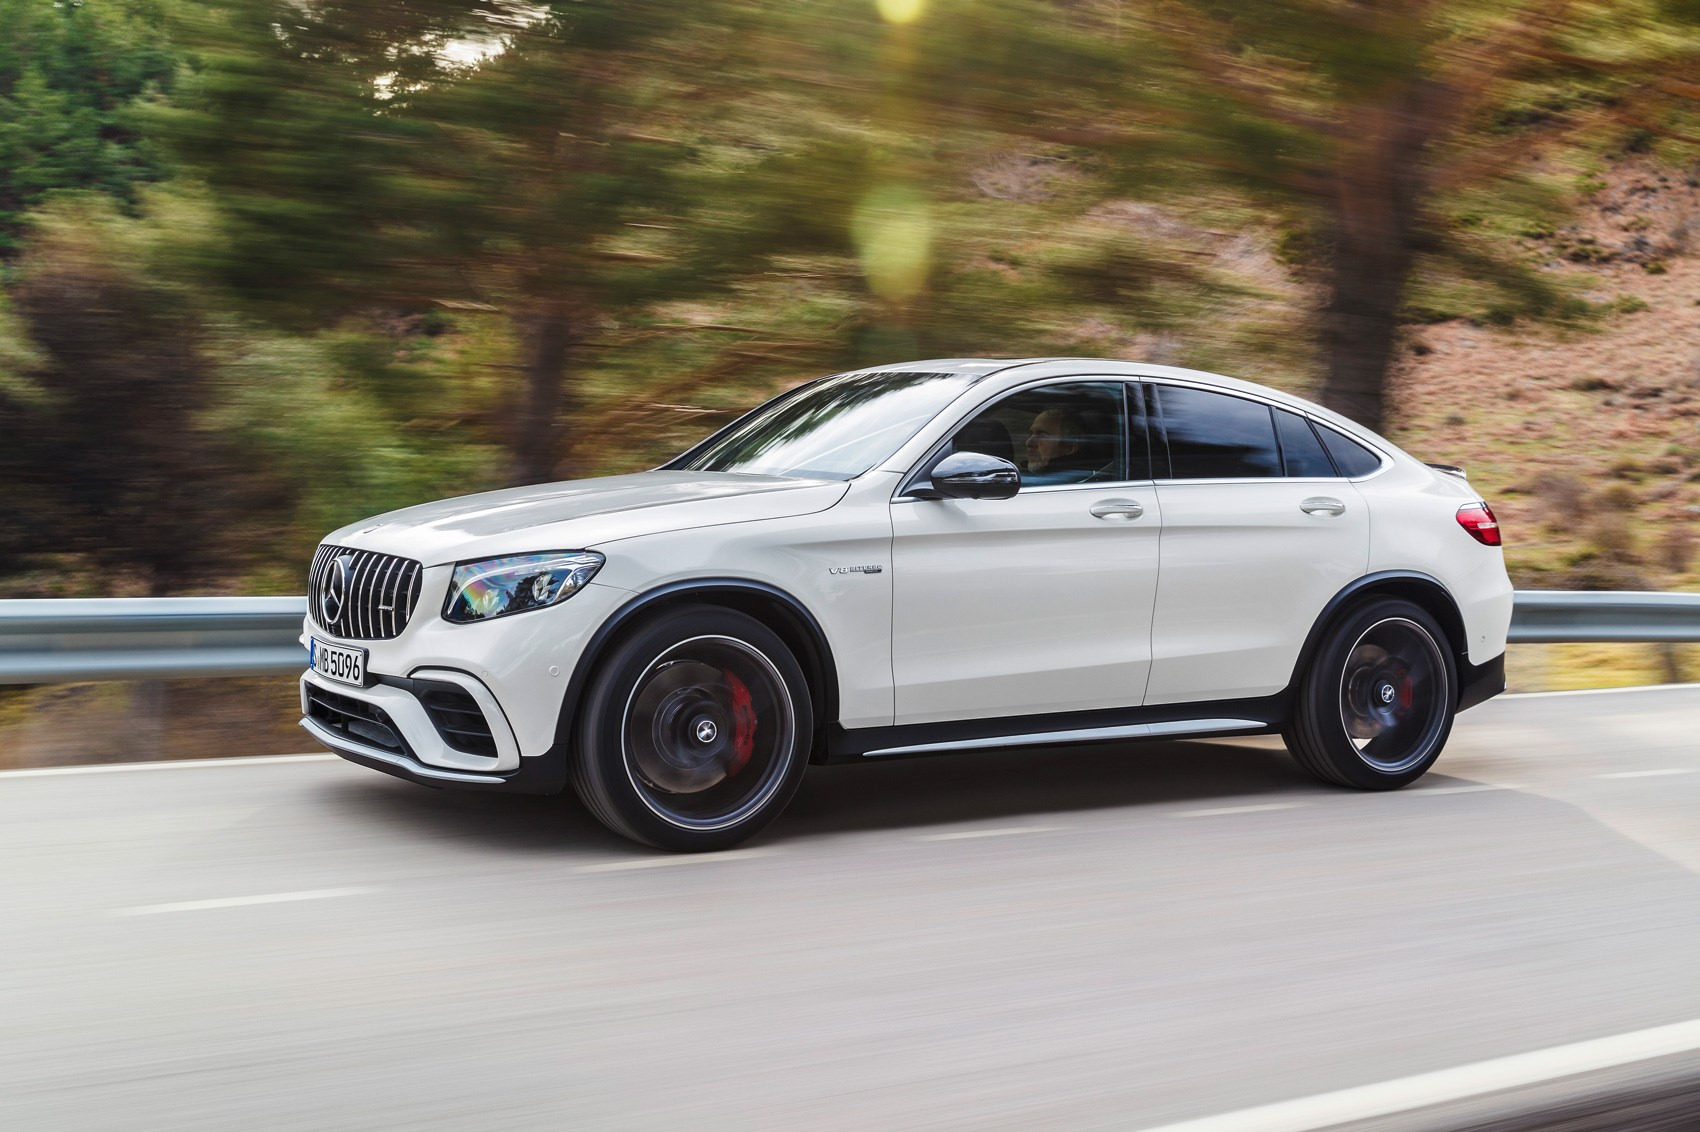 mercedes amg glc63 s review as subtle as a sledgehammer. Black Bedroom Furniture Sets. Home Design Ideas